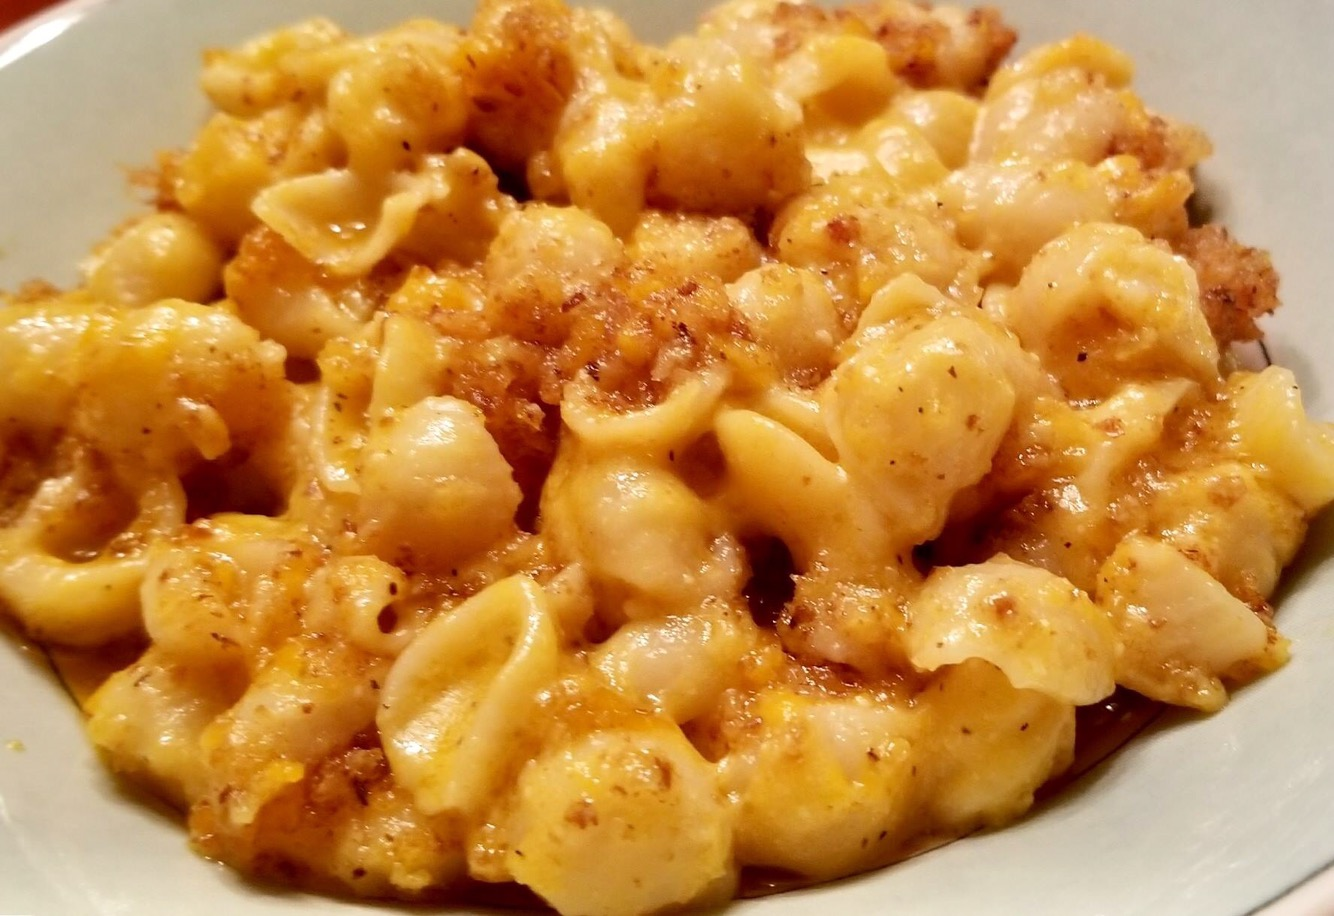 Vegan Baked Macaroni & Cheese